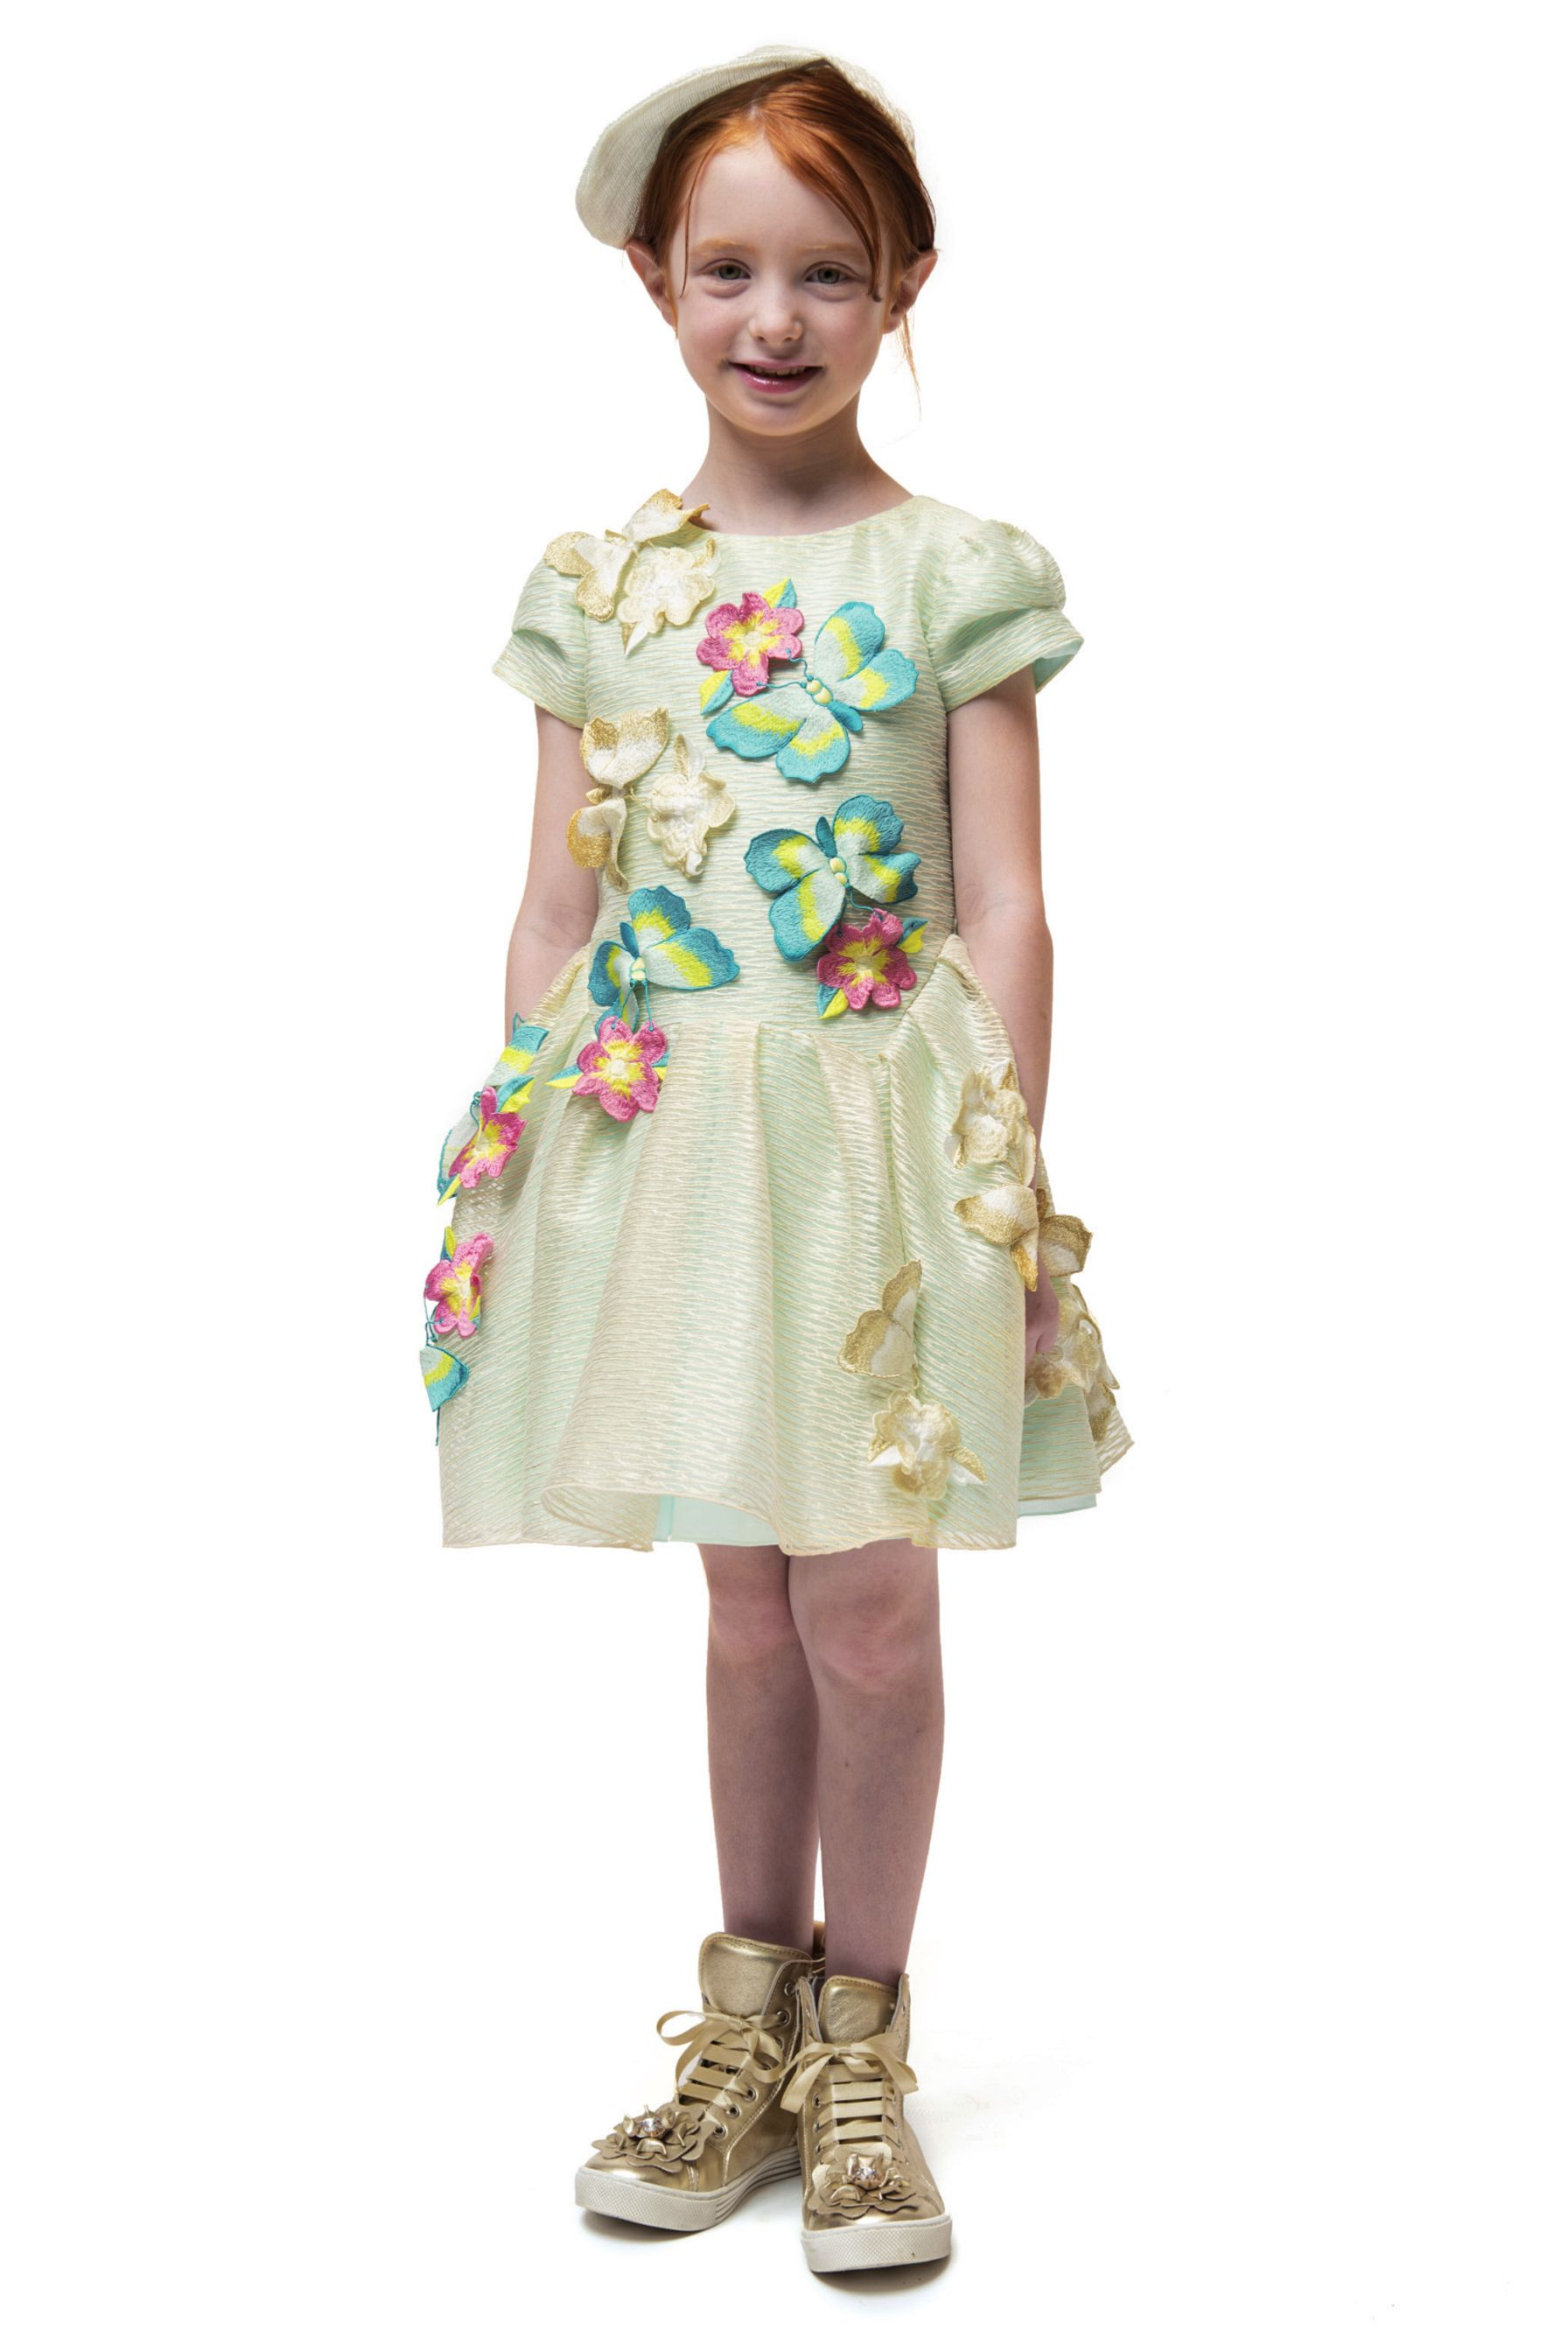 I pinco pallino spring short sleeves ivory dress with matching